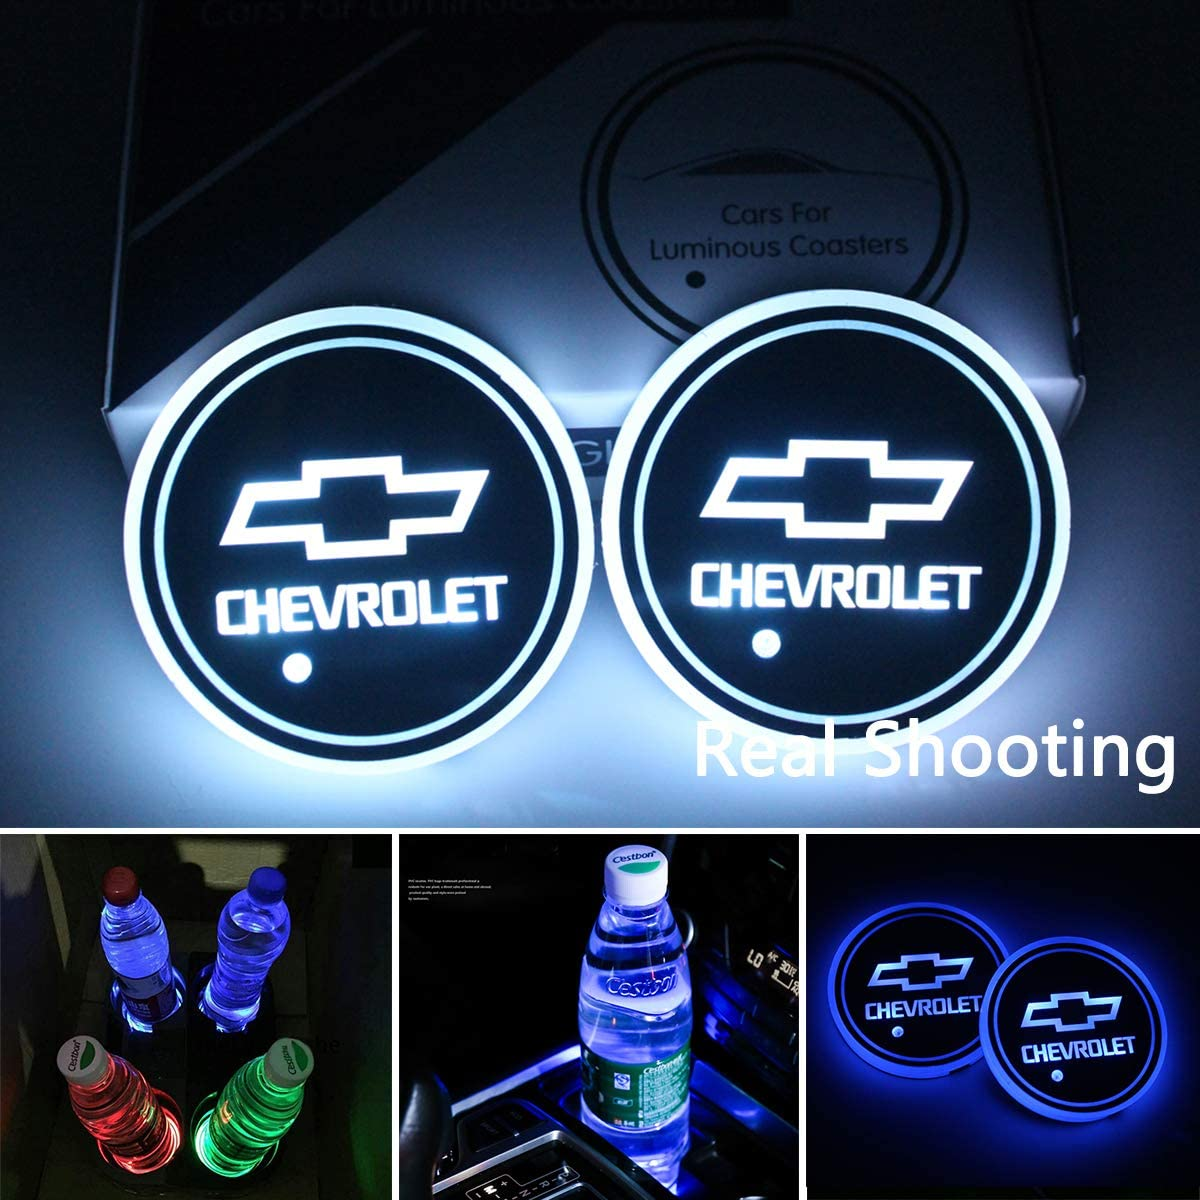 Noveltys 2pcs Chevy Cup Holders,LED Car Cup Holder Lights for Chevrolet,Camaro Silverado/Malibu/Accessories